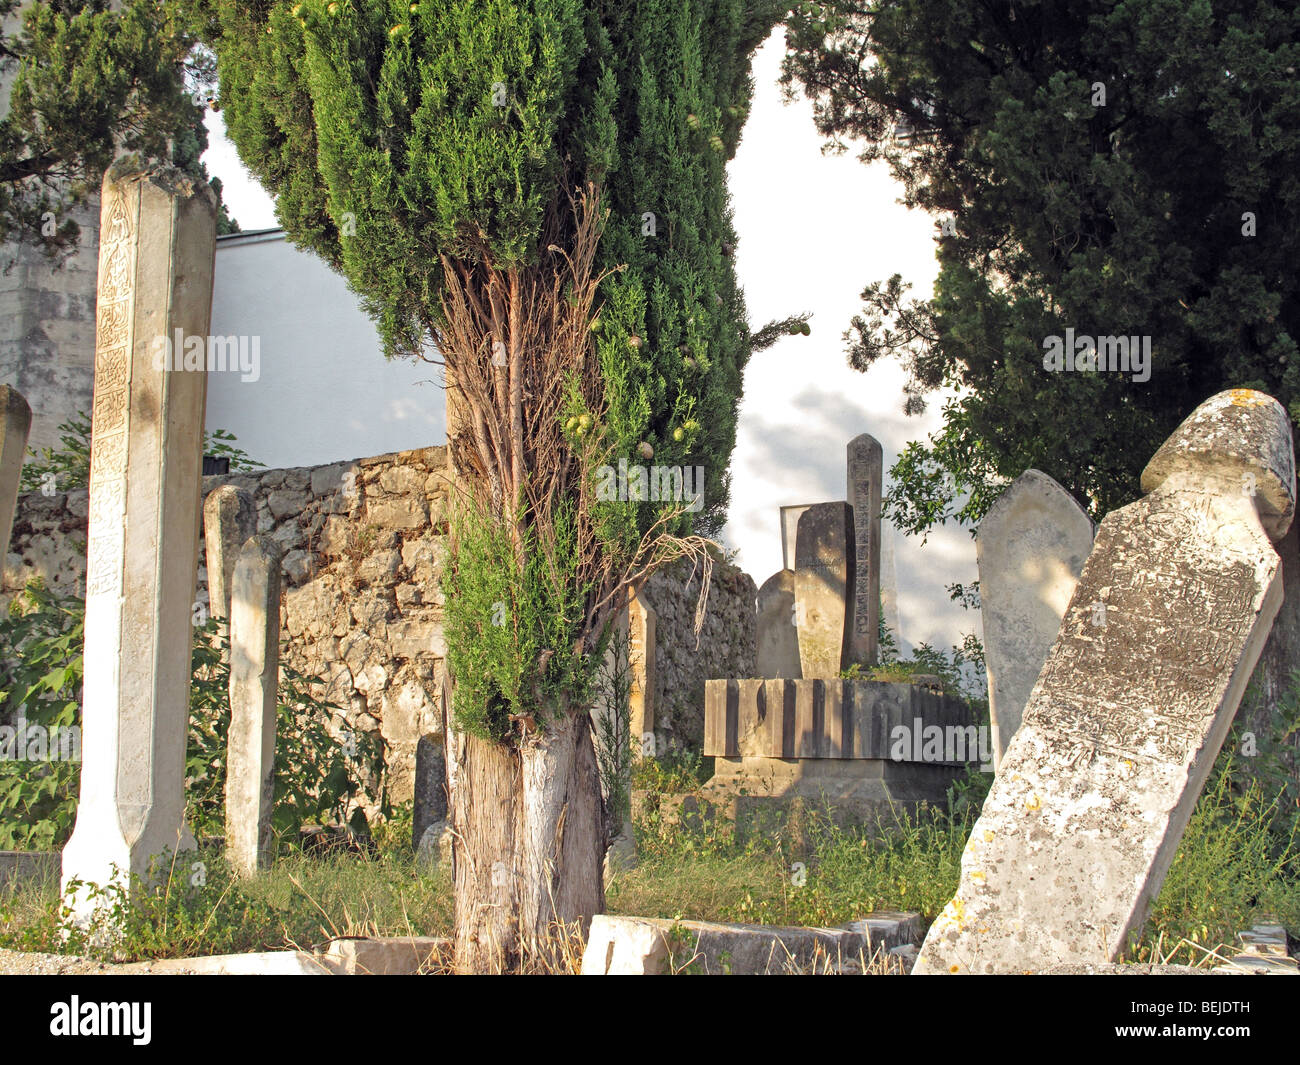 Old Muslim graves with tombstones. - Stock Image